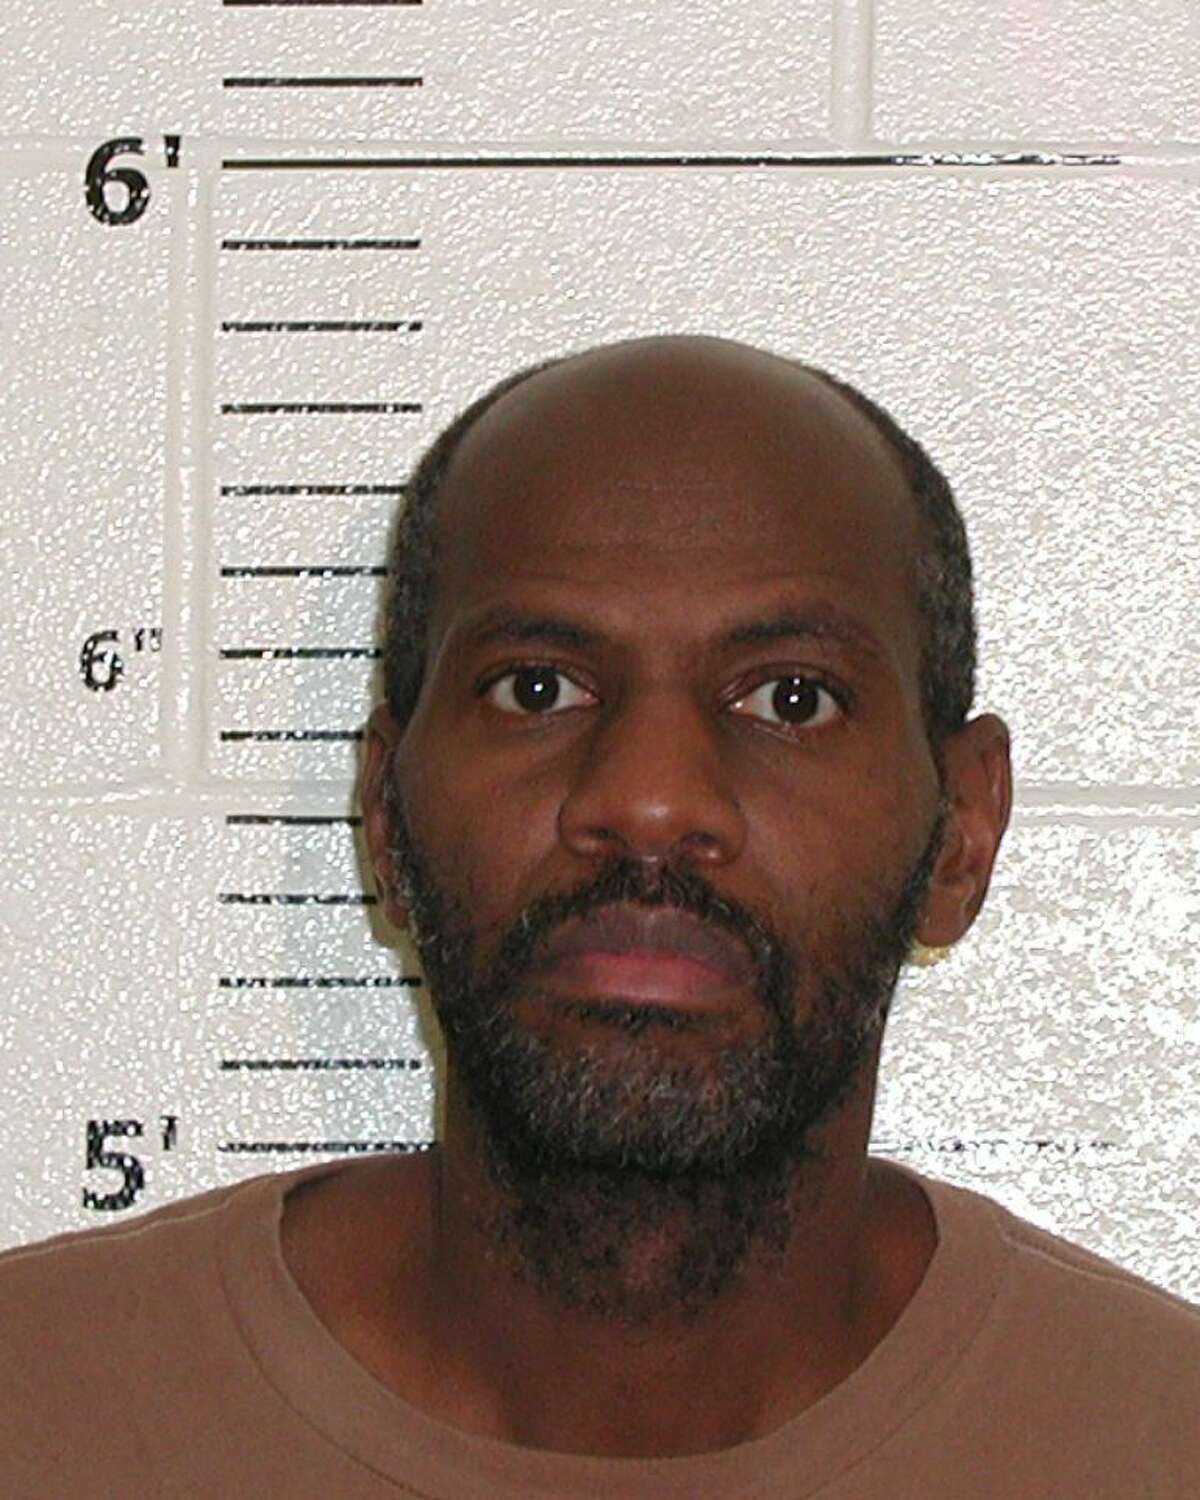 Eric Pree is wanted by the United States Marshals Service for escaping from federal prison on Jan. 28, 2017.